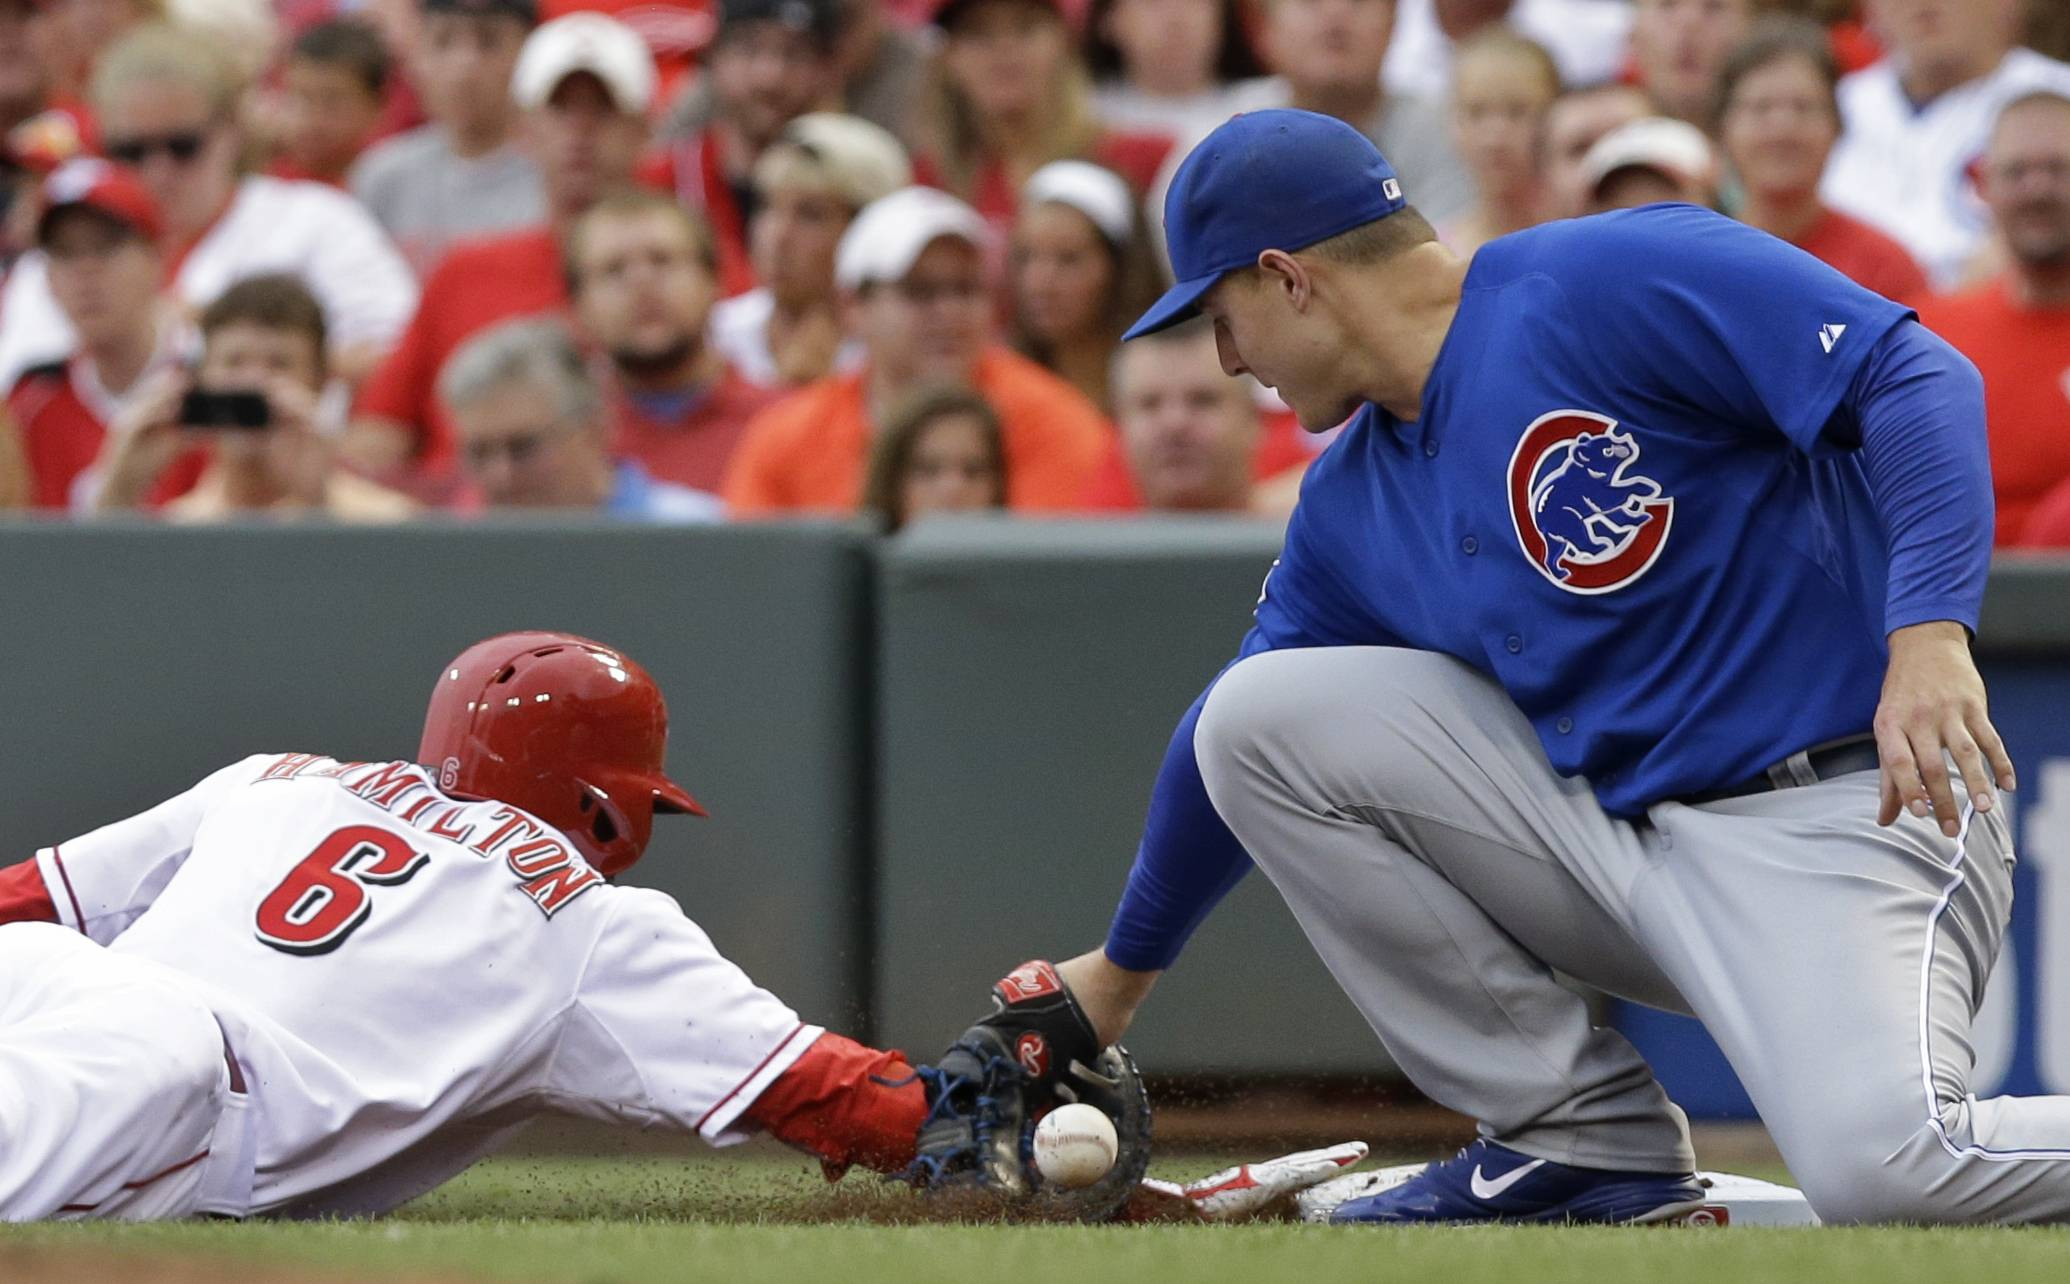 Cincinnati Reds' Billy Hamilton (6) dives safely back to first base as Chicago Cubs first baseman Anthony Rizzo drops a pickoff throw from starting pitcher Edwin Jackson in the first inning of a baseball game, Monday, July 7, 2014, in Cincinnati.